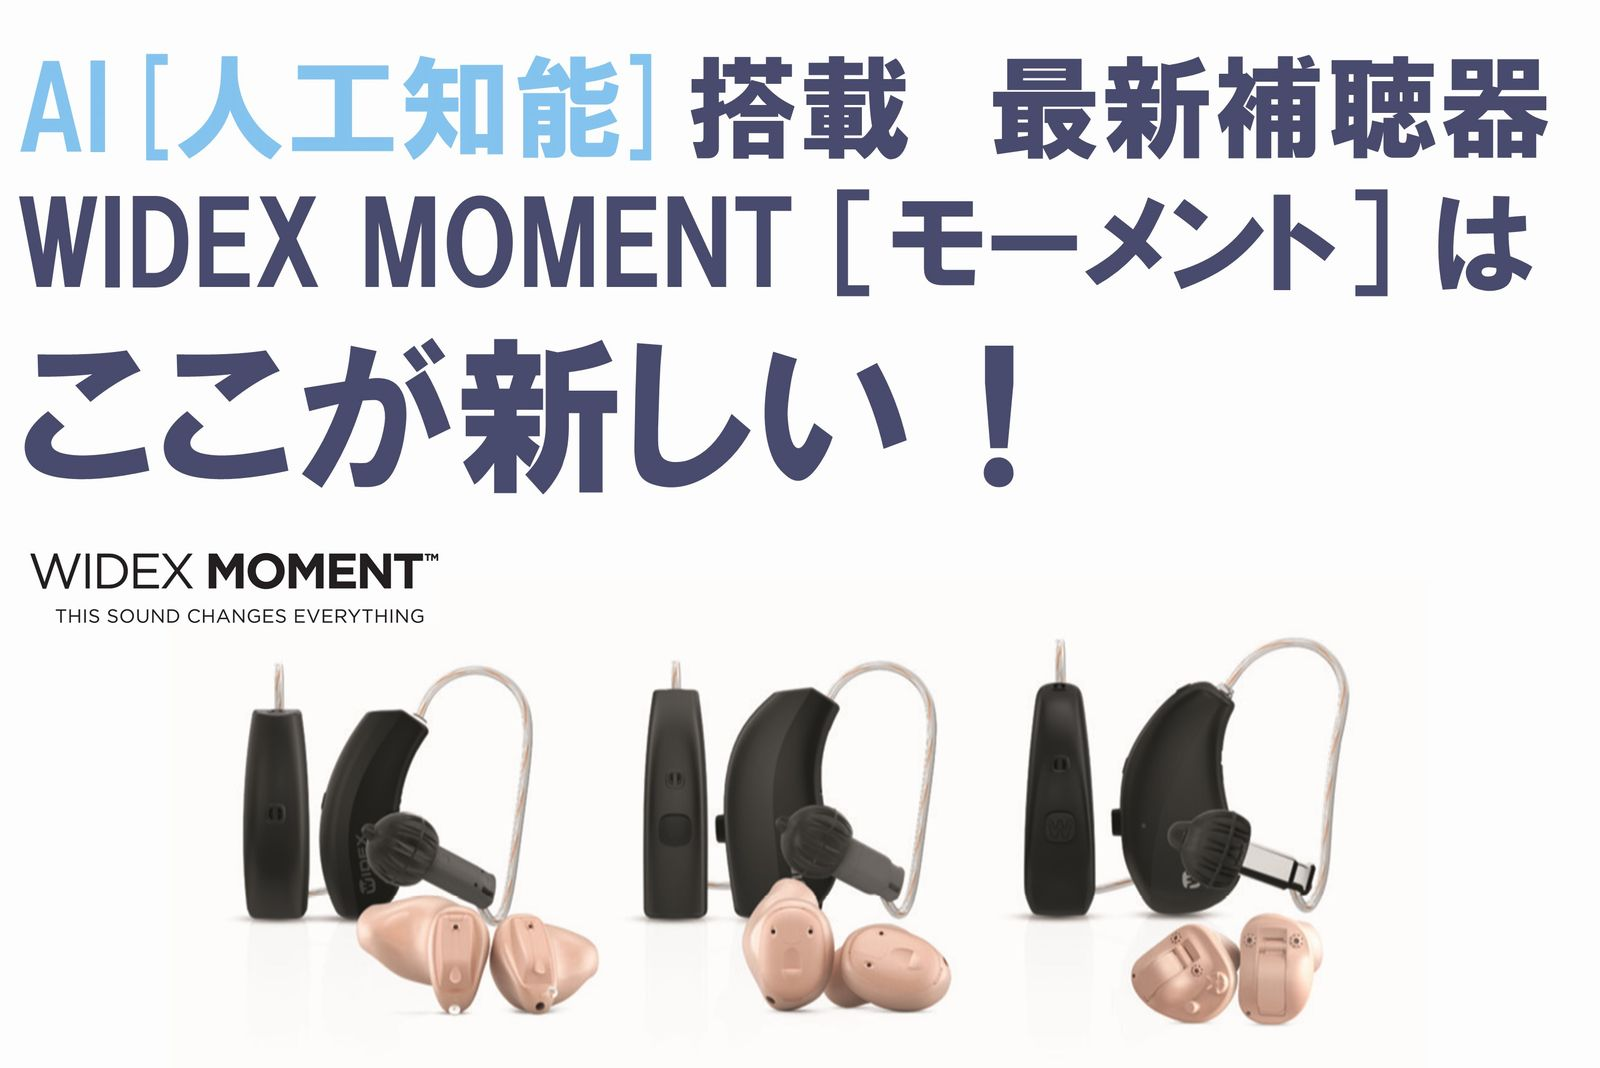 WIDEX MOMENT新しい